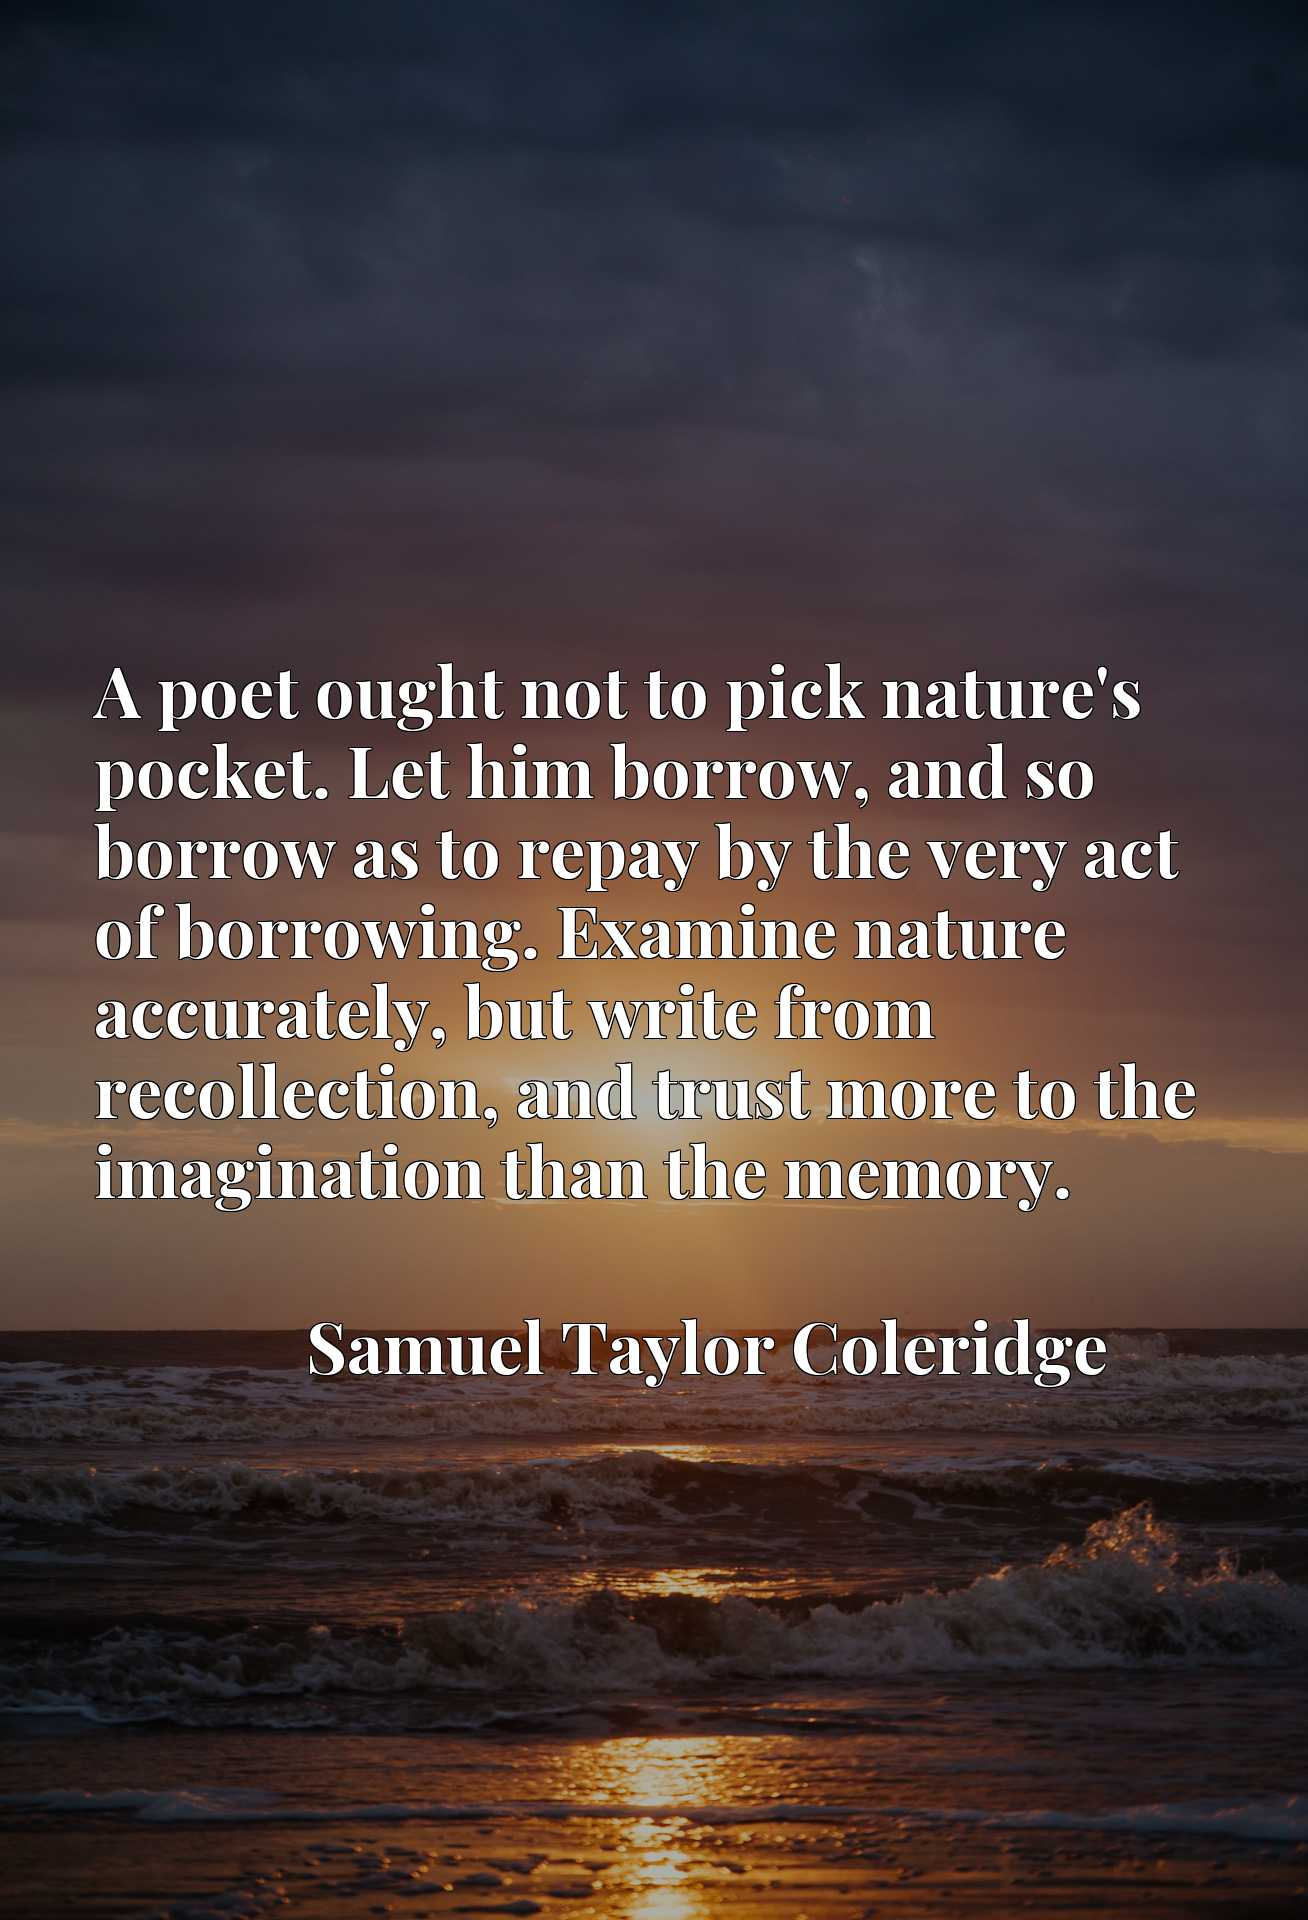 Quote Picture :A poet ought not to pick nature's pocket. Let him borrow, and so borrow as to repay by the very act of borrowing. Examine nature accurately, but write from recollection, and trust more to the imagination than the memory.